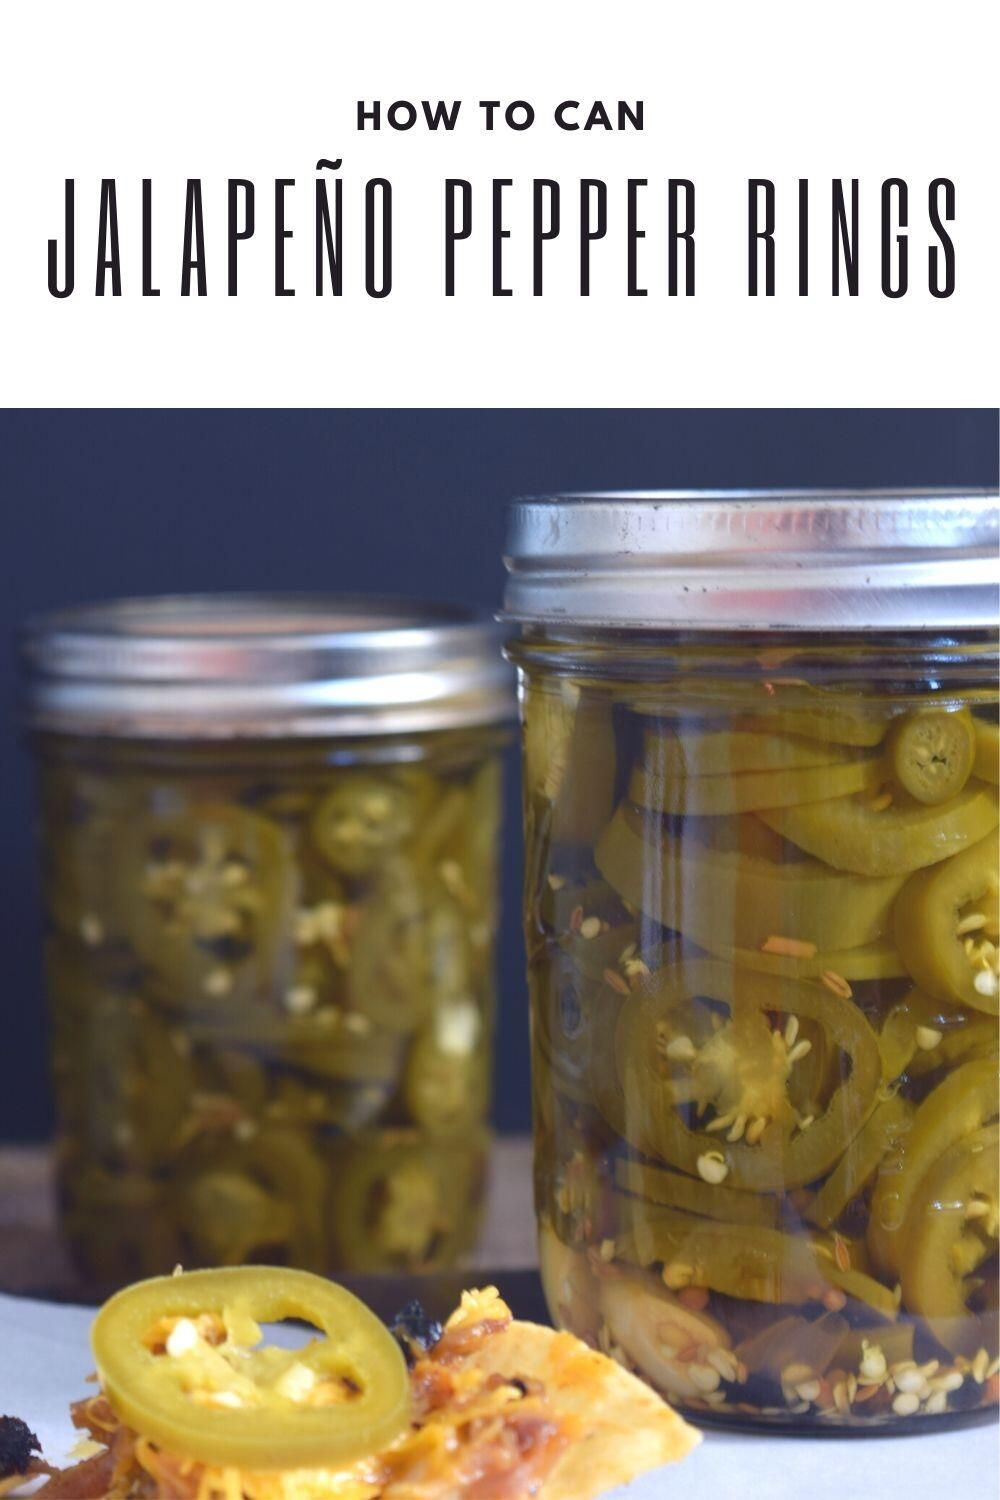 How to Can Pickled Jalapeno Peppers Recipe in 2020